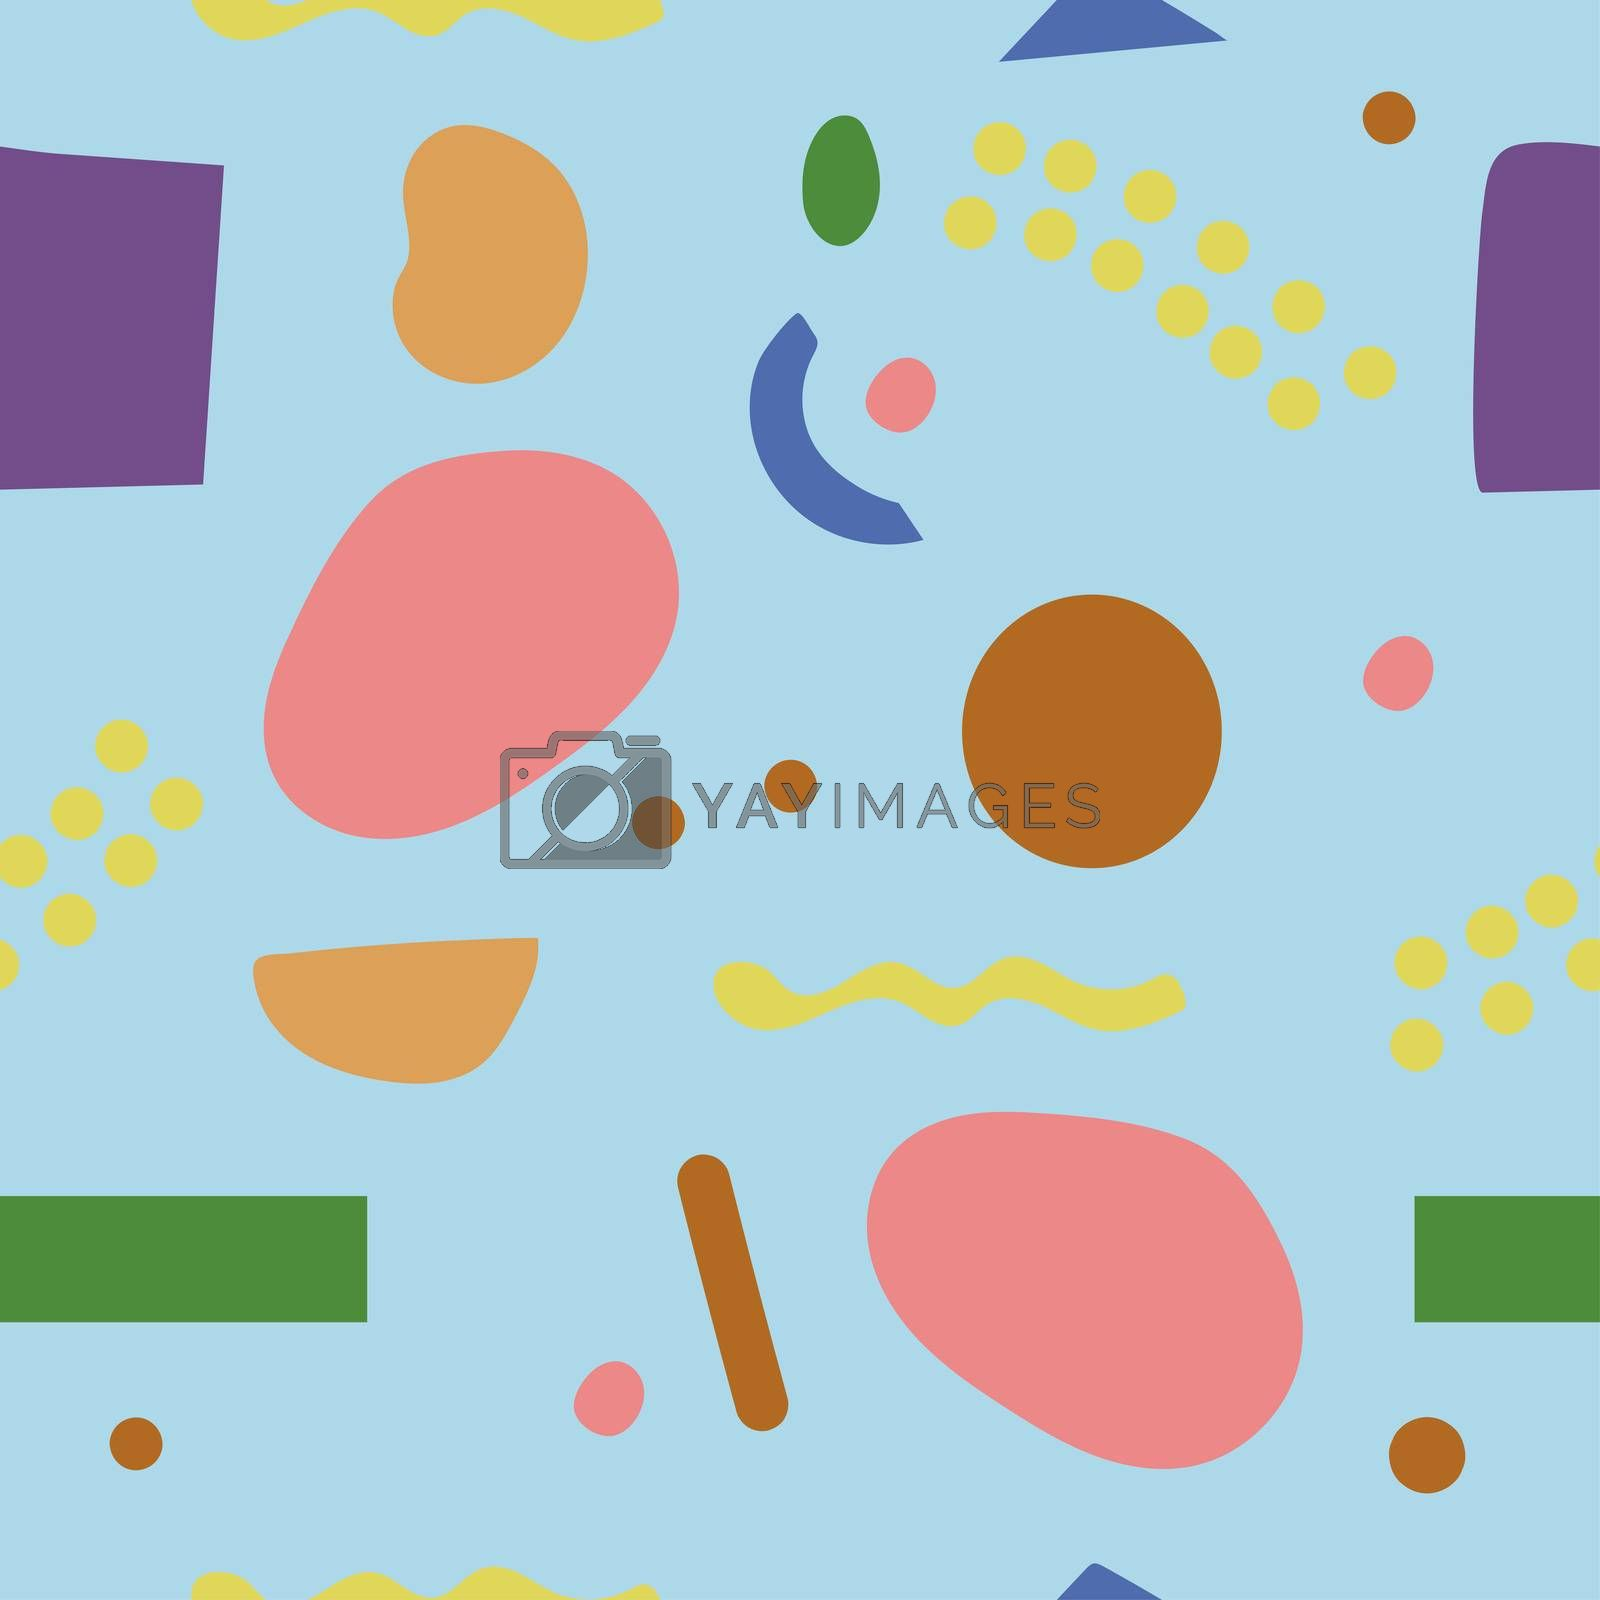 Seamles Abstract Stones Pattern on White Background, Nature Hand Drawn Shapes, Modern Pattern.